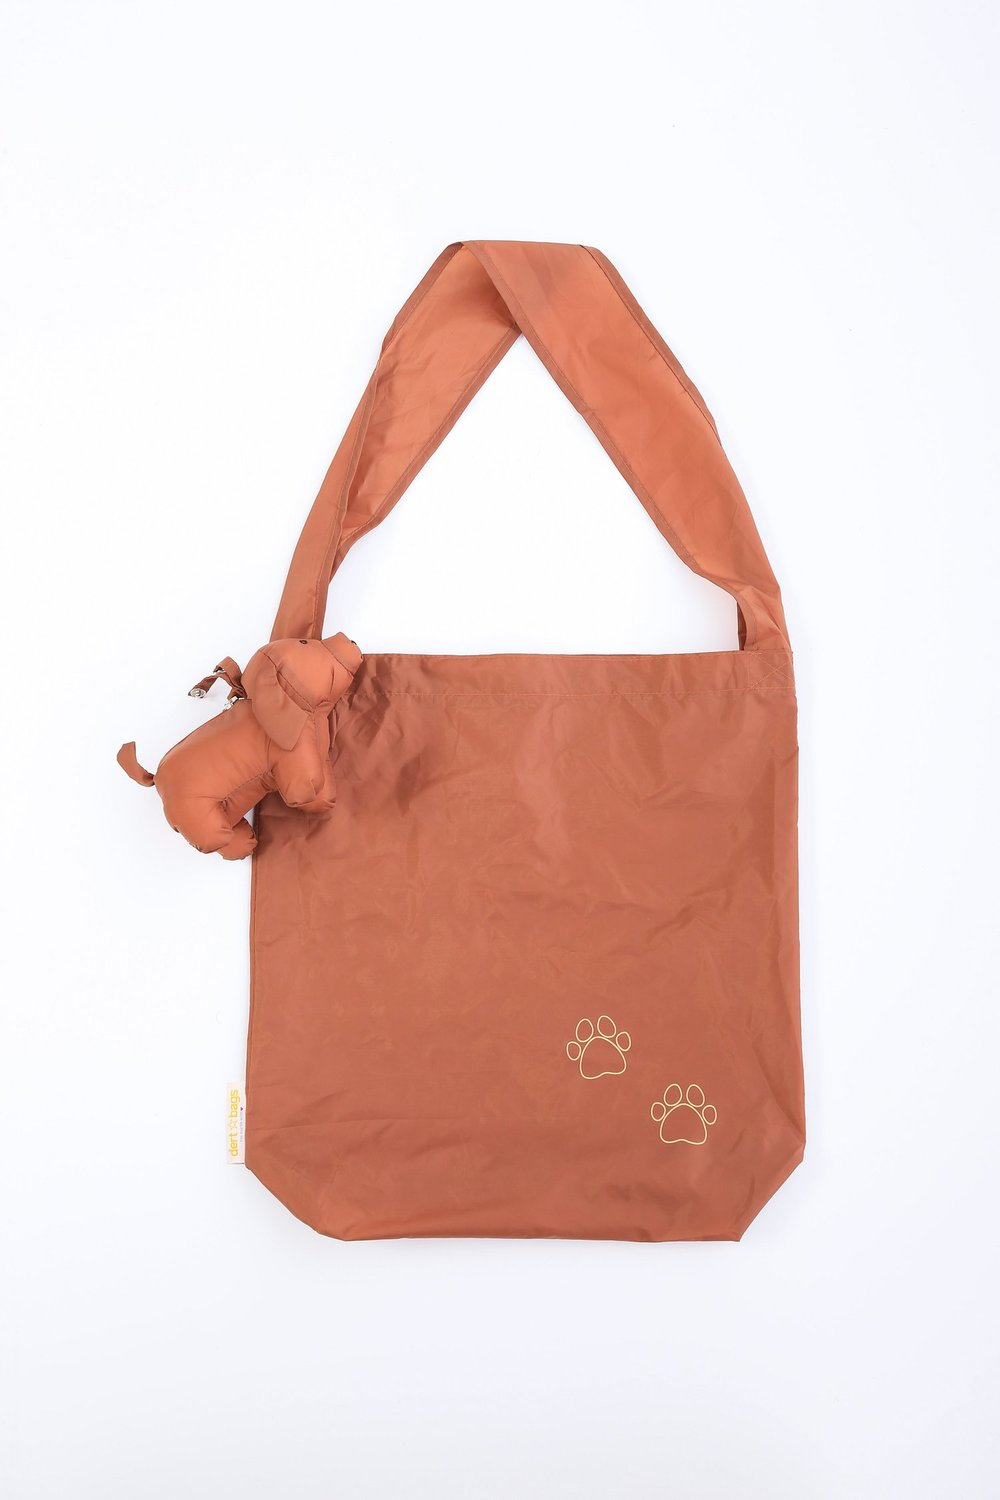 #4 Doggy Bag - This convenient Bag folds up into a little dog charm. Available online. $19